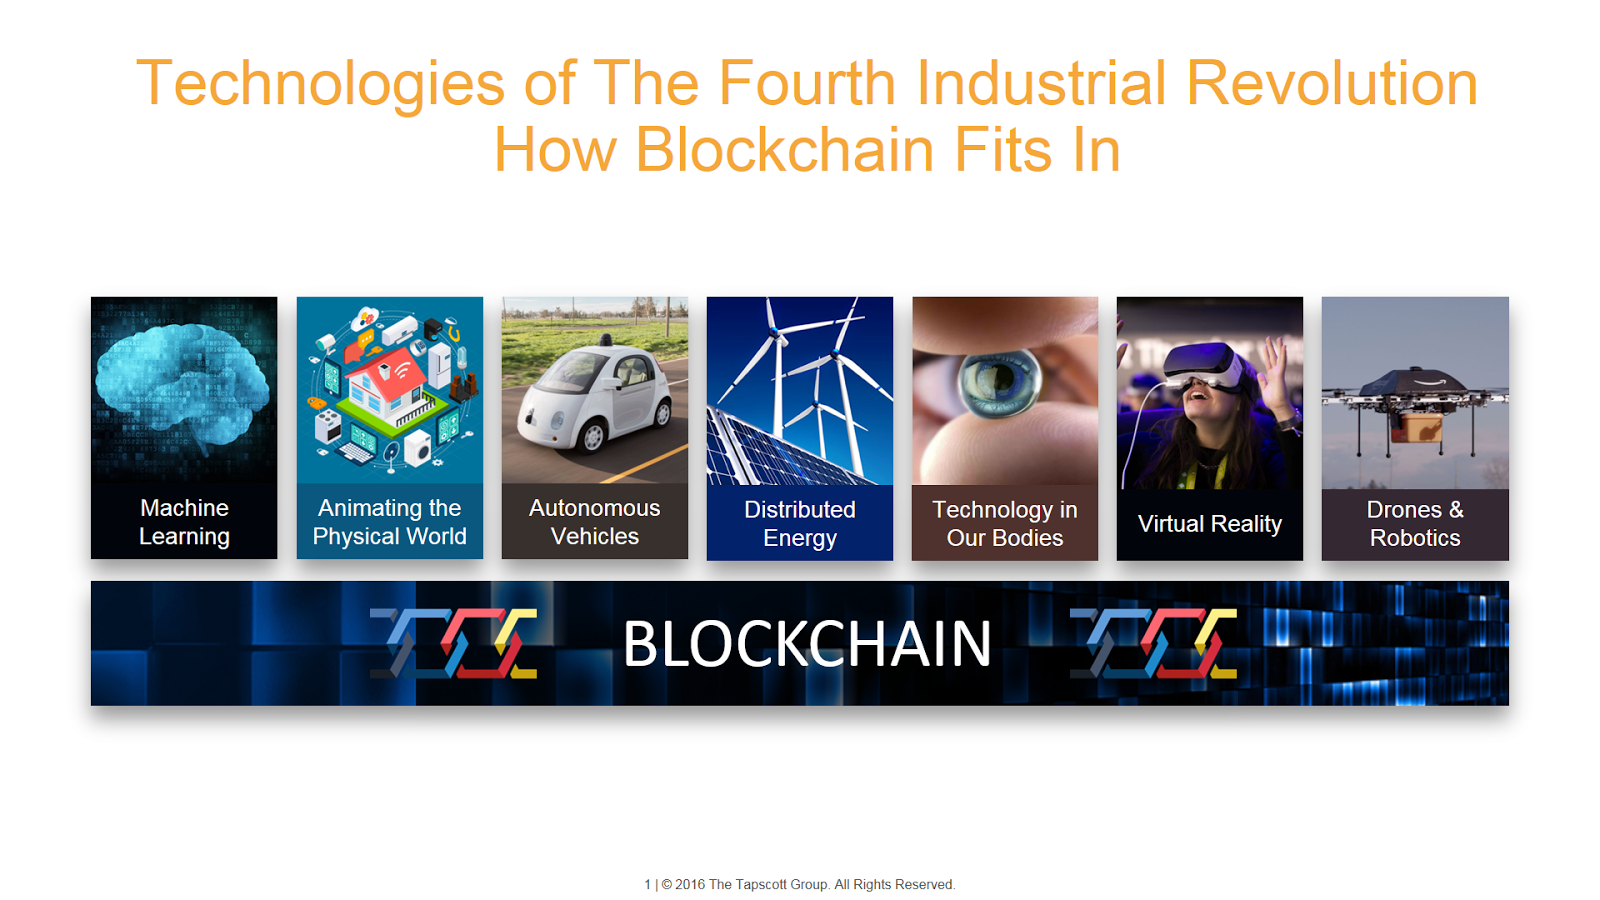 Technologies of The Fourth Industrial Revolution How Blockchain Fits In by Don Tapscott